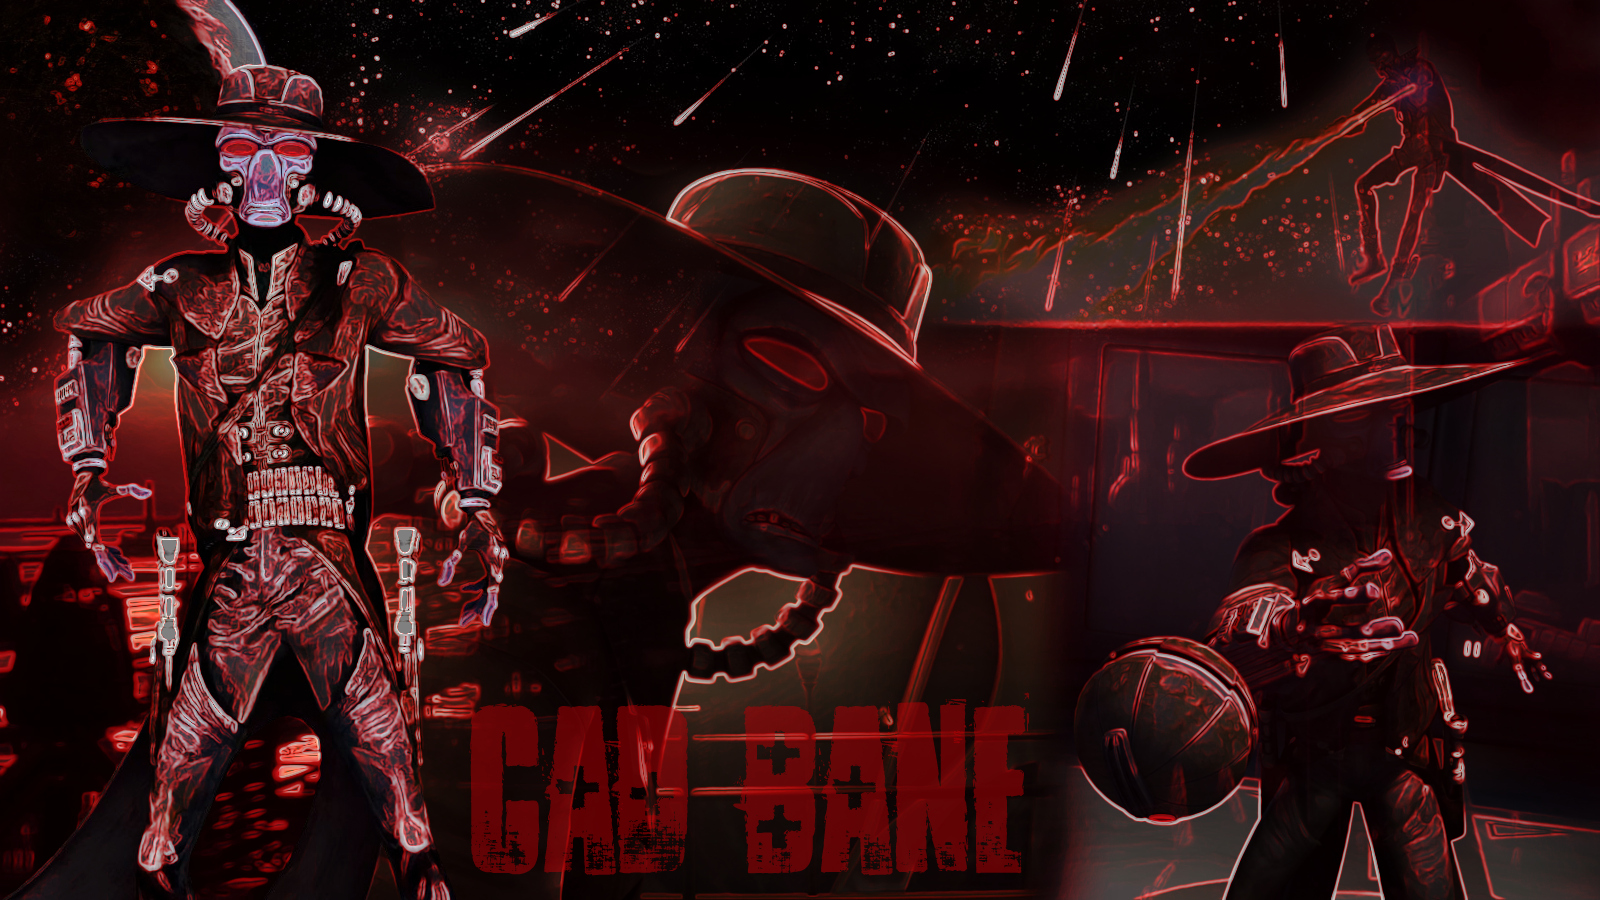 Cad bane wallpaper the star wars underworld - Bane wallpaper ...